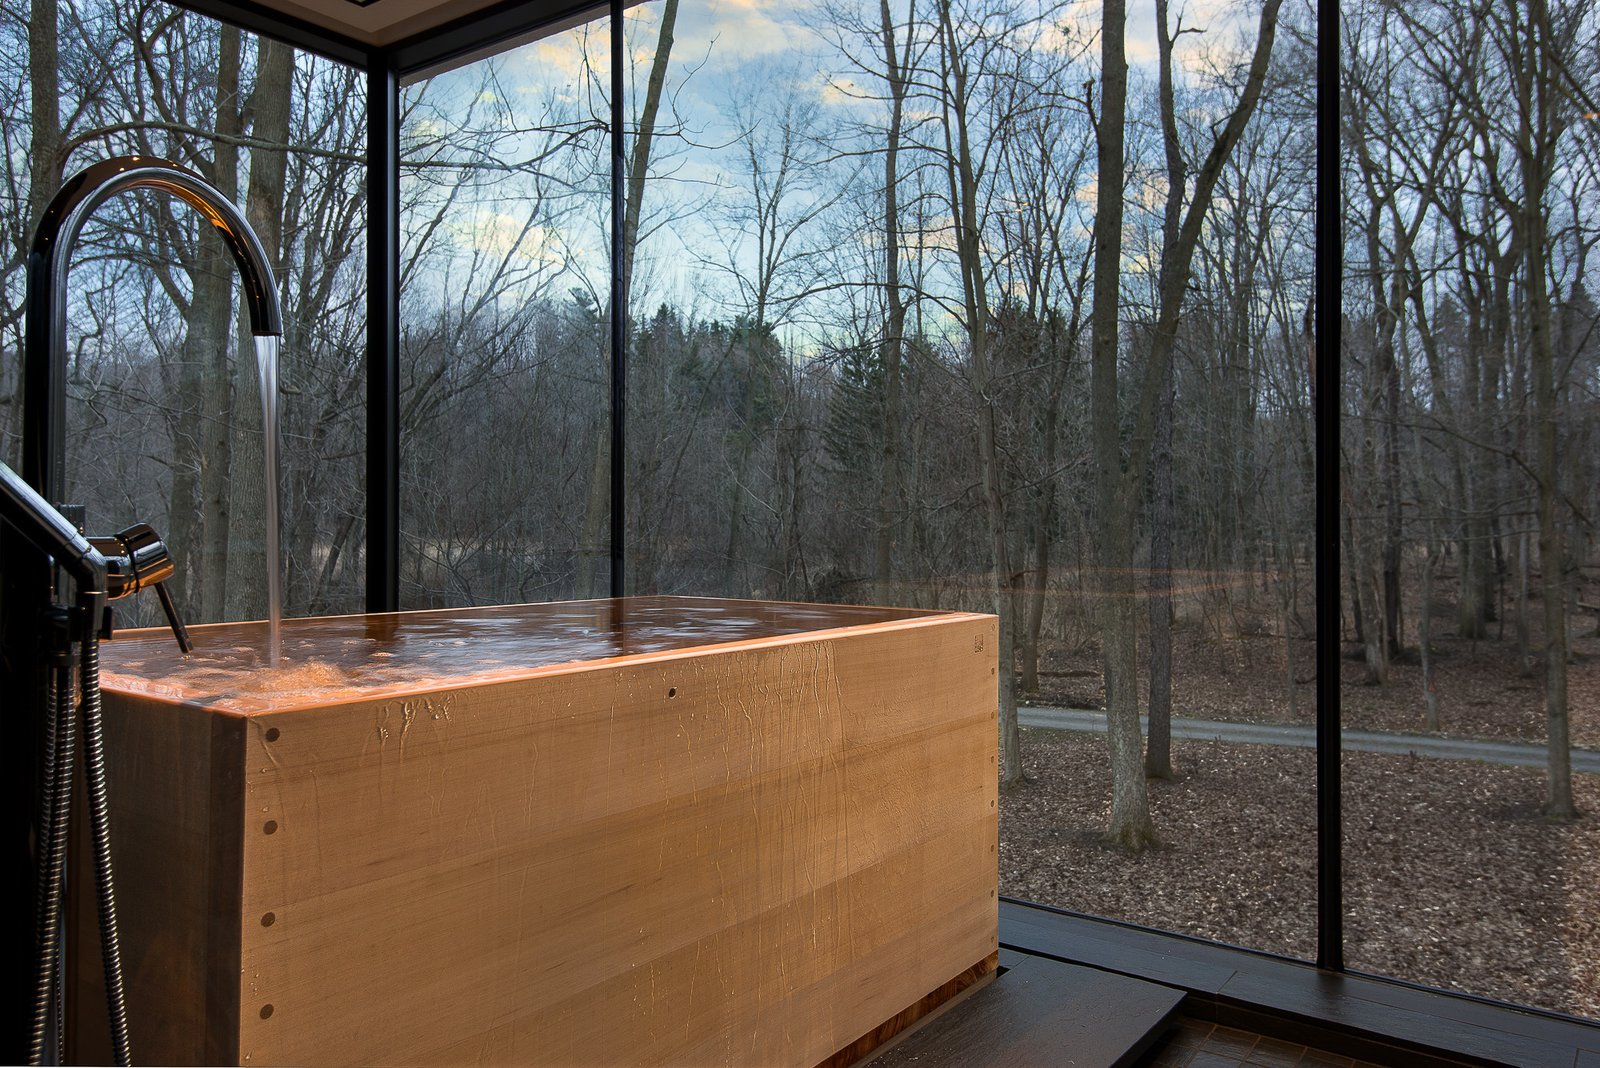 Hinoki tub with floor drain Tagged: Bath Room, Slate Floor, Soaking Tub, and Freestanding Tub.  House in the Woods by Kim Smith